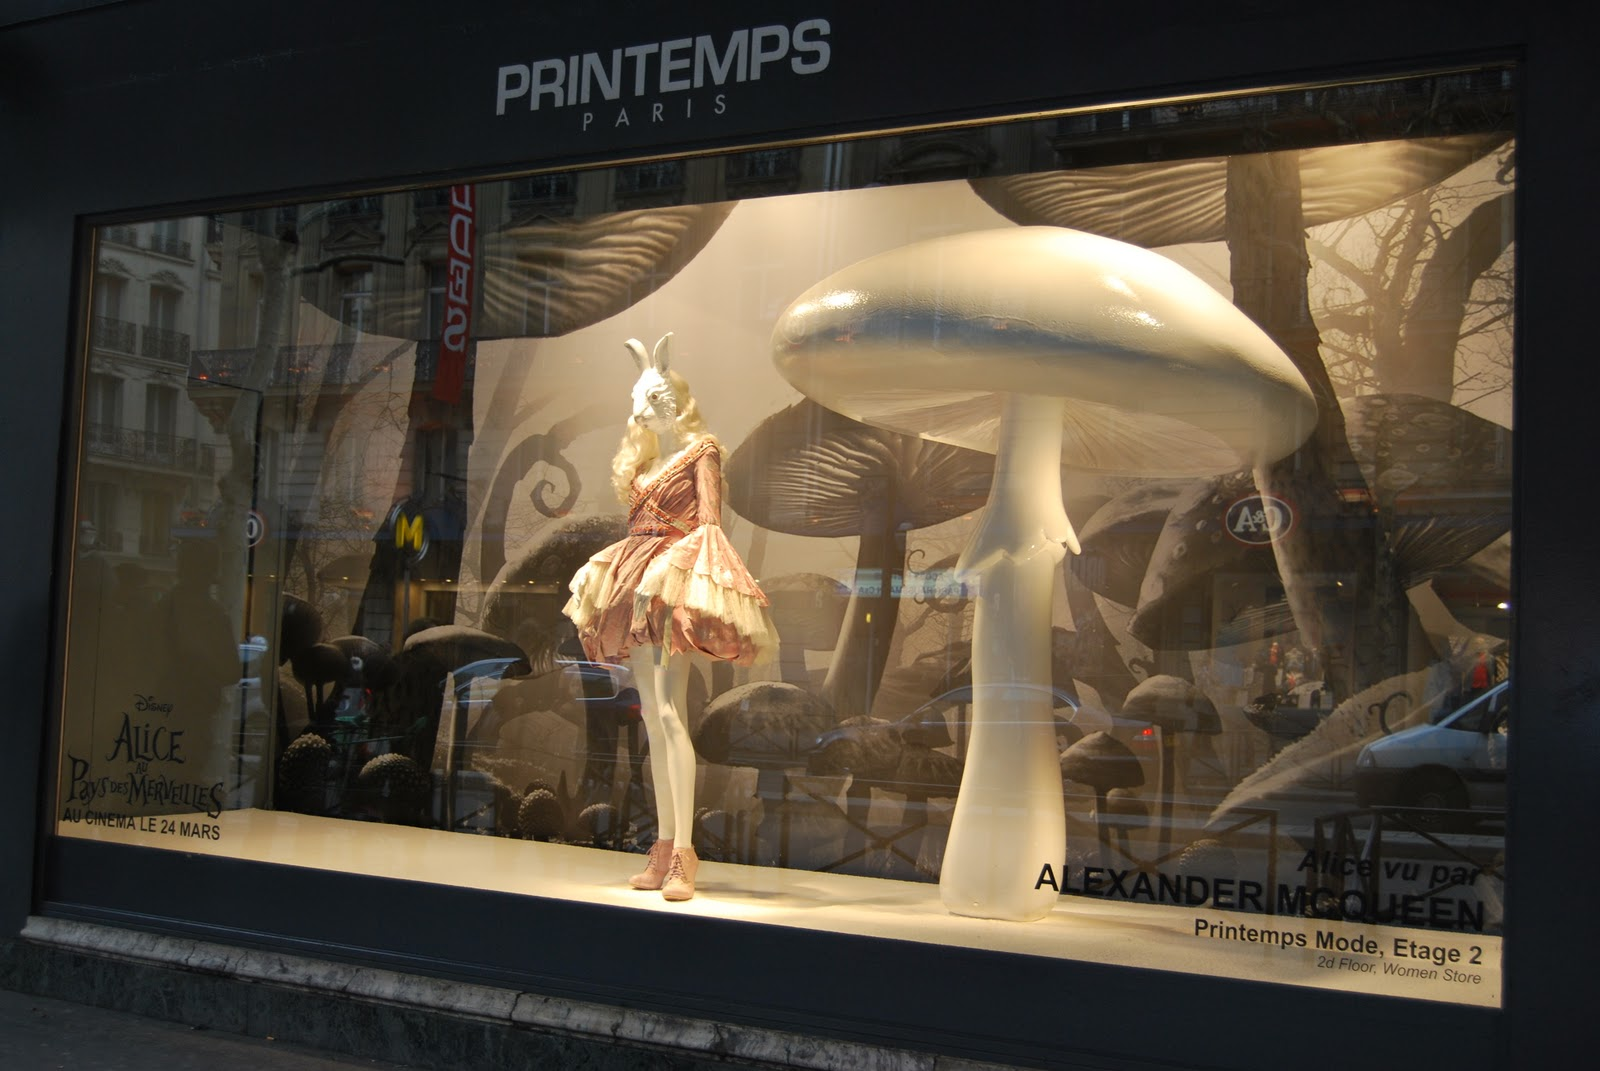 c97aba541c8e2 Their windows coincided with the launch of Tim Burton's Alice in  Wonderland. Showcasing designers such as the late Alexander McQueen the  giant props create ...